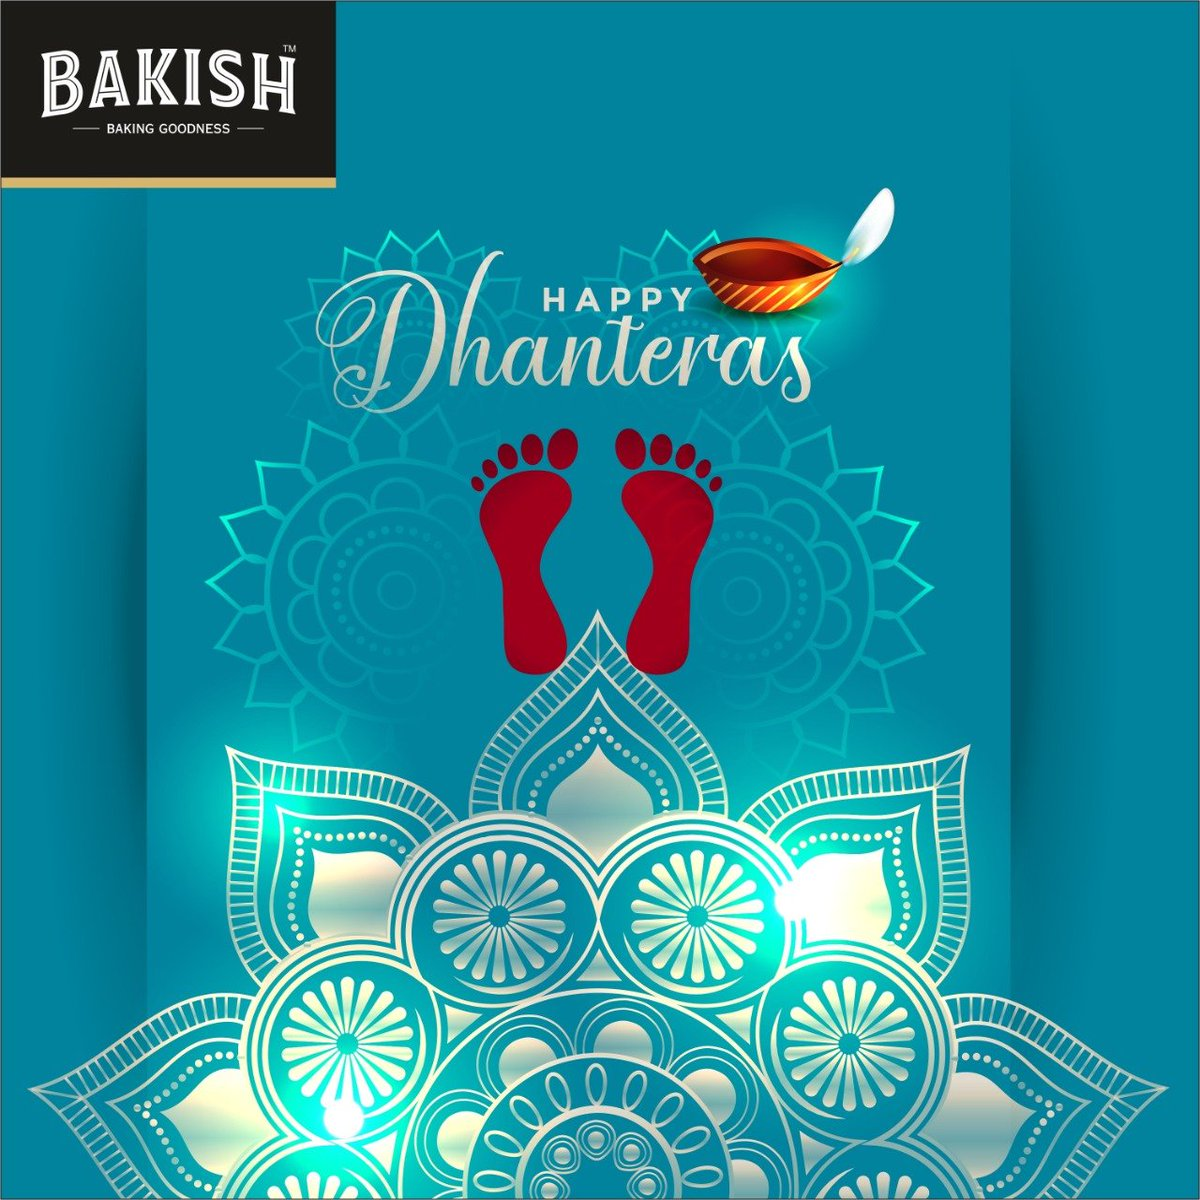 This Dhanteras greet your loved ones & remind them that you care with Diwali Gift Hampers from Bakish.. #Dhanteras #Bakish #DiwaliHampers #CookiesBox pic.twitter.com/hN5X7a5MDa